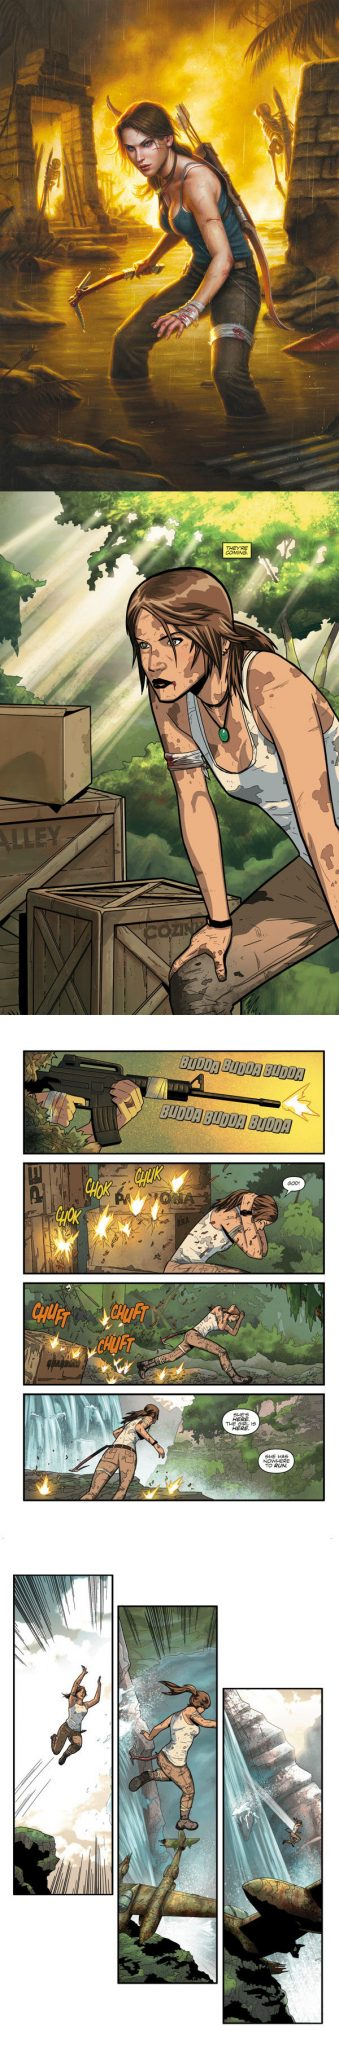 Tomb Raider is getting her own comic compliments of Dark Horse Comics come February 26 and we've got a handy dandy preview for all you yokels. Check it out!